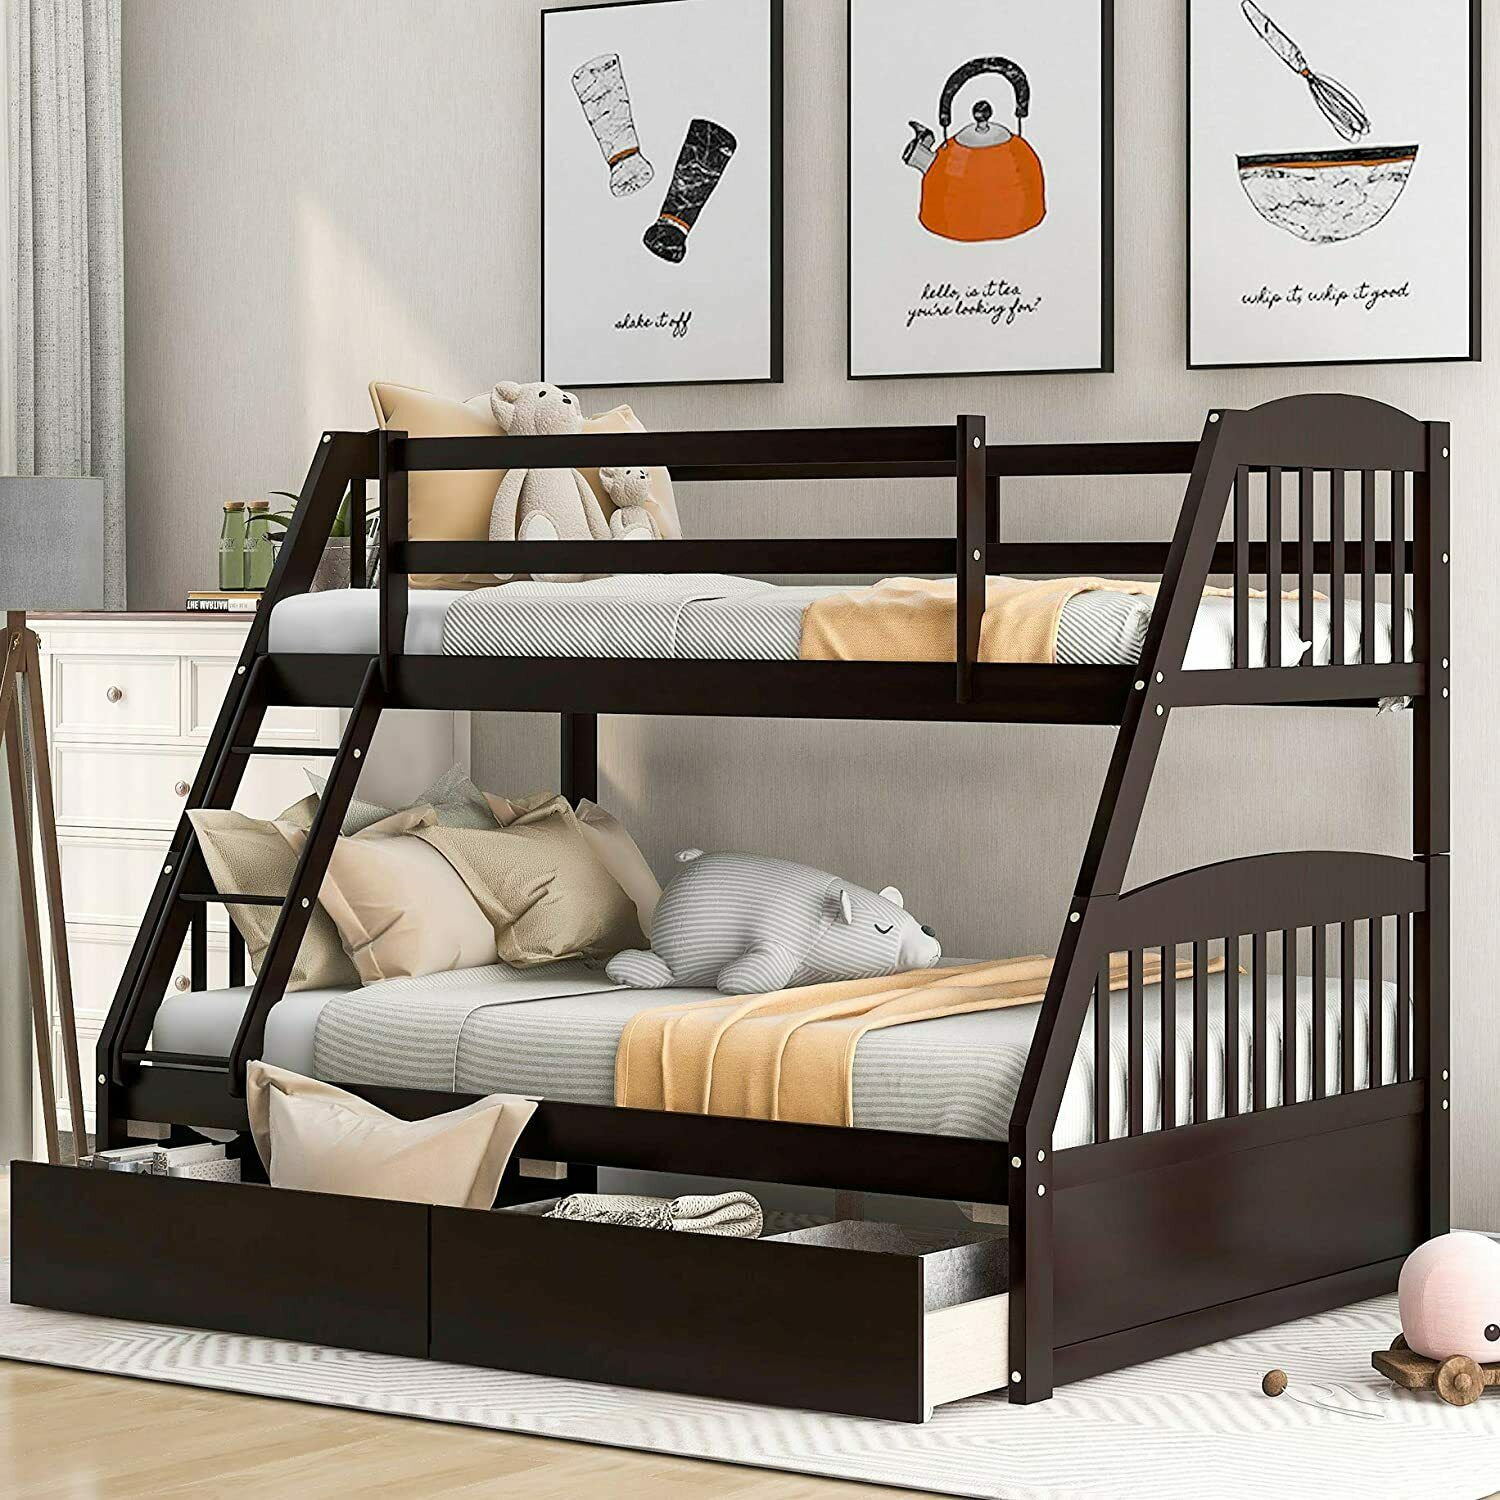 Bedz King Stairway Bunk Beds Twin Over Full With 4 Drawers White Full For Sale Online Ebay